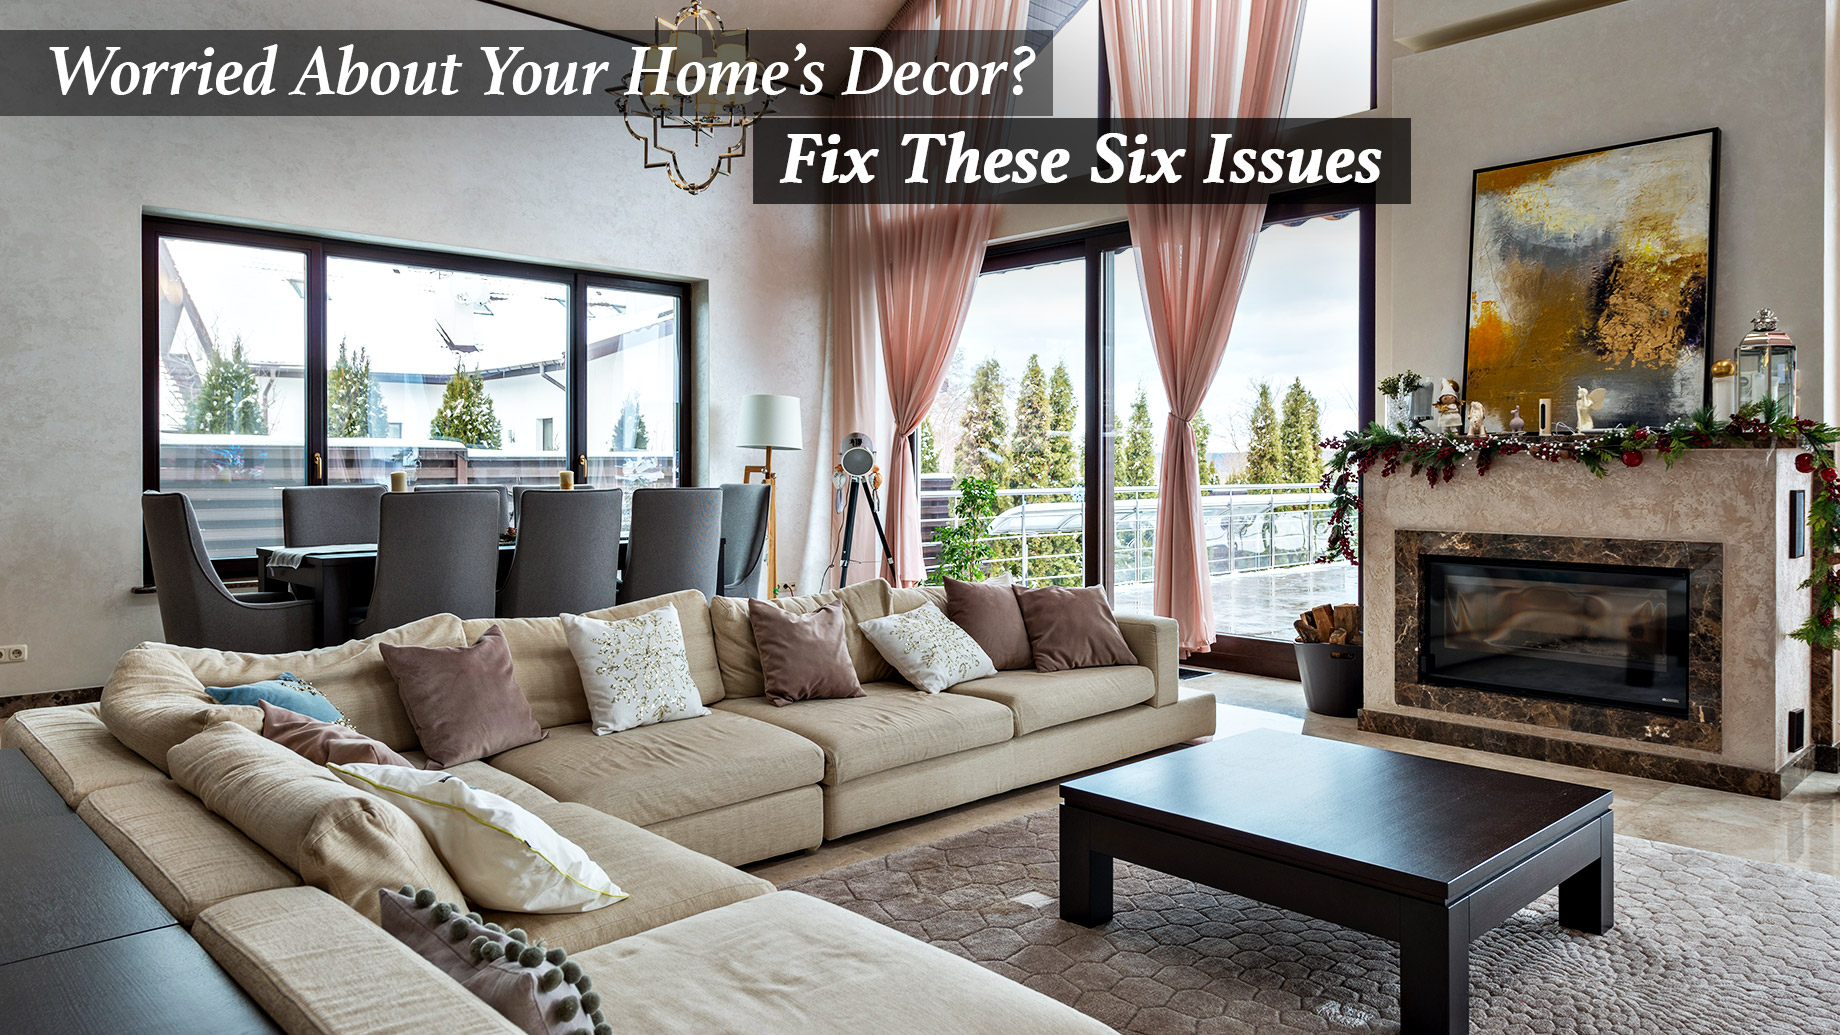 Worried About Your Home's Decor? Fix These Six Issues